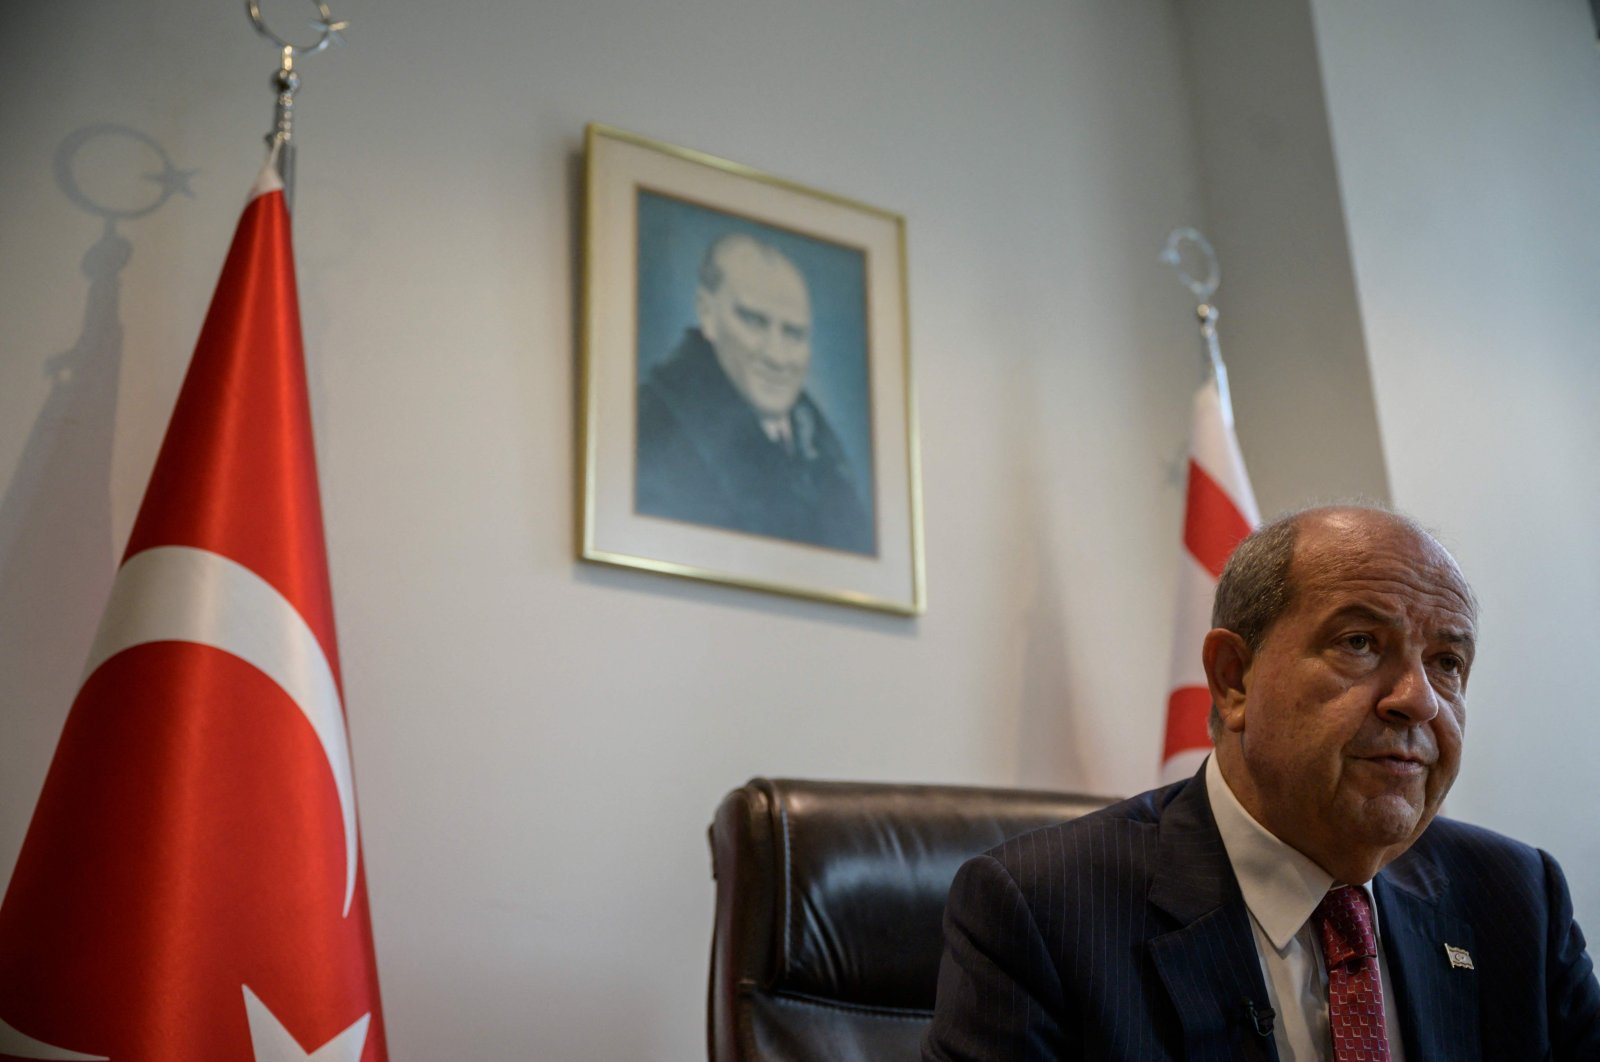 Turkish Cypriot President Ersin Tatar speaks with Agence France-Presse in his office at the Turkish House, in New York, U.S., on Sept. 23, 2021. (AFP Photo)